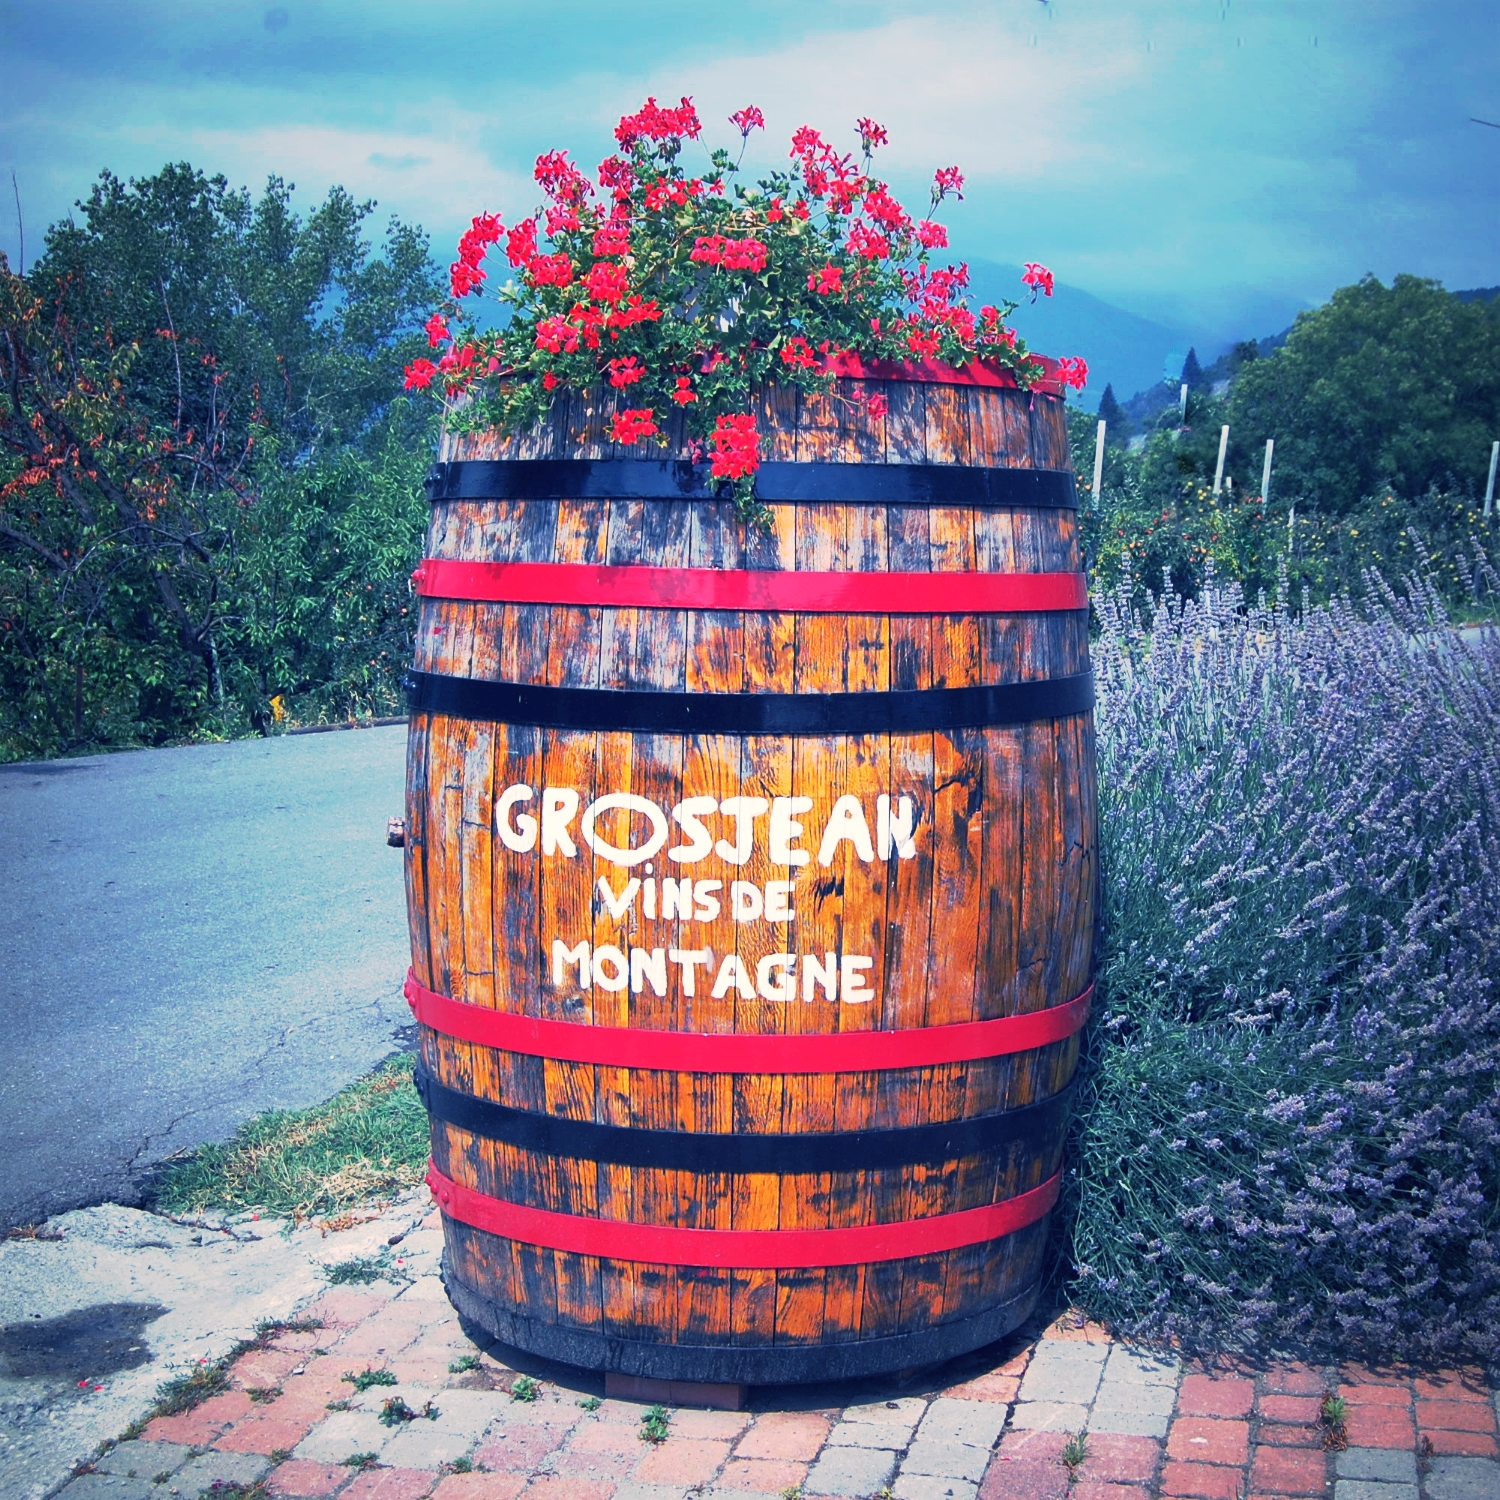 Arriving at Grosjean Freres, Aosta, IT (thank goodness for GPS). The Grosjean winery is located in the foothills of the Italian Alps. We plugged their GPS coordinates into our machine and bumped along a lot of unmarked roads before we saw this colorful wine barrel that indicated we'd found the right place.